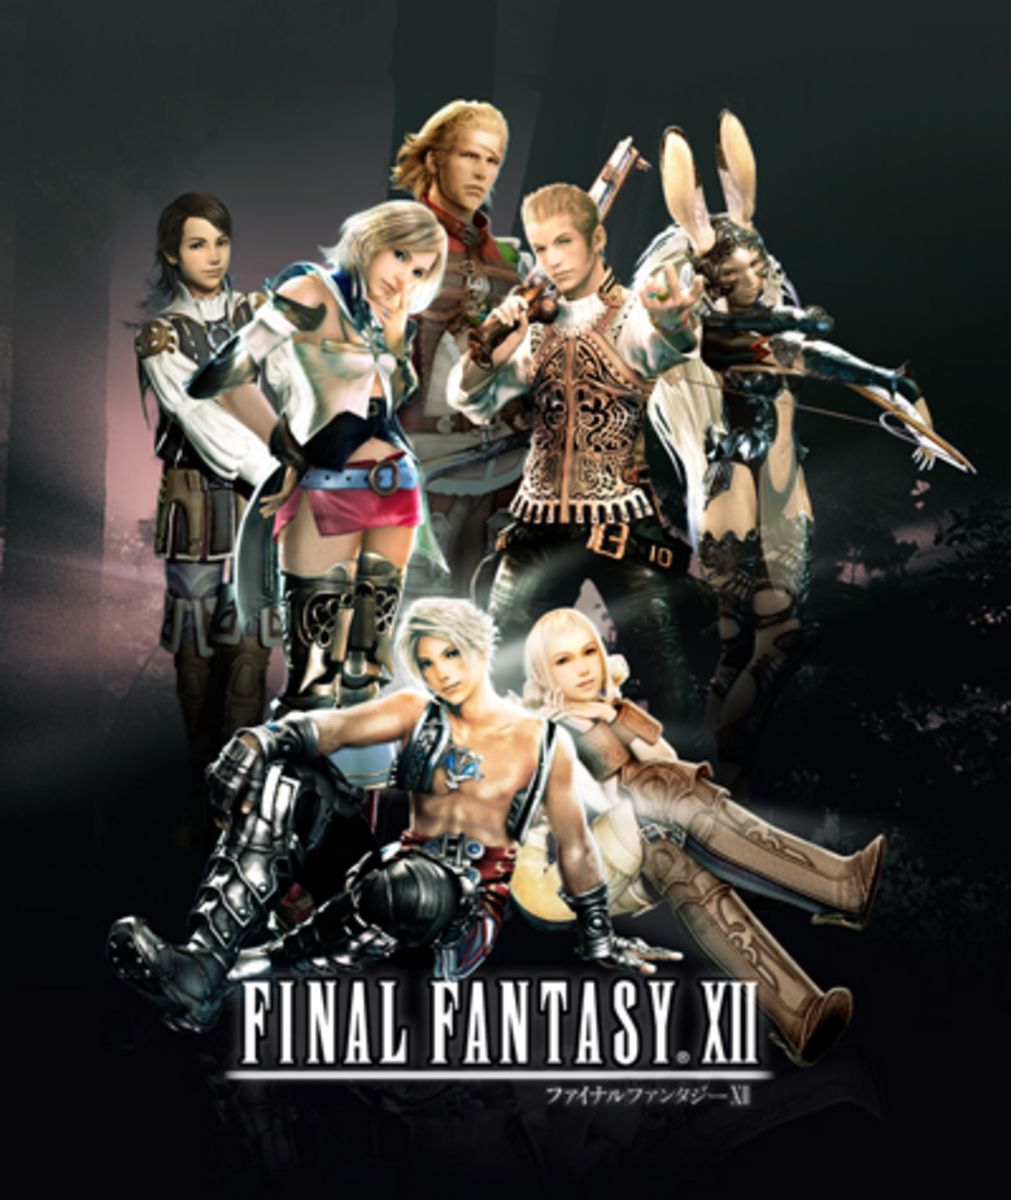 Group shot of the characters from Final Fantasy XII.